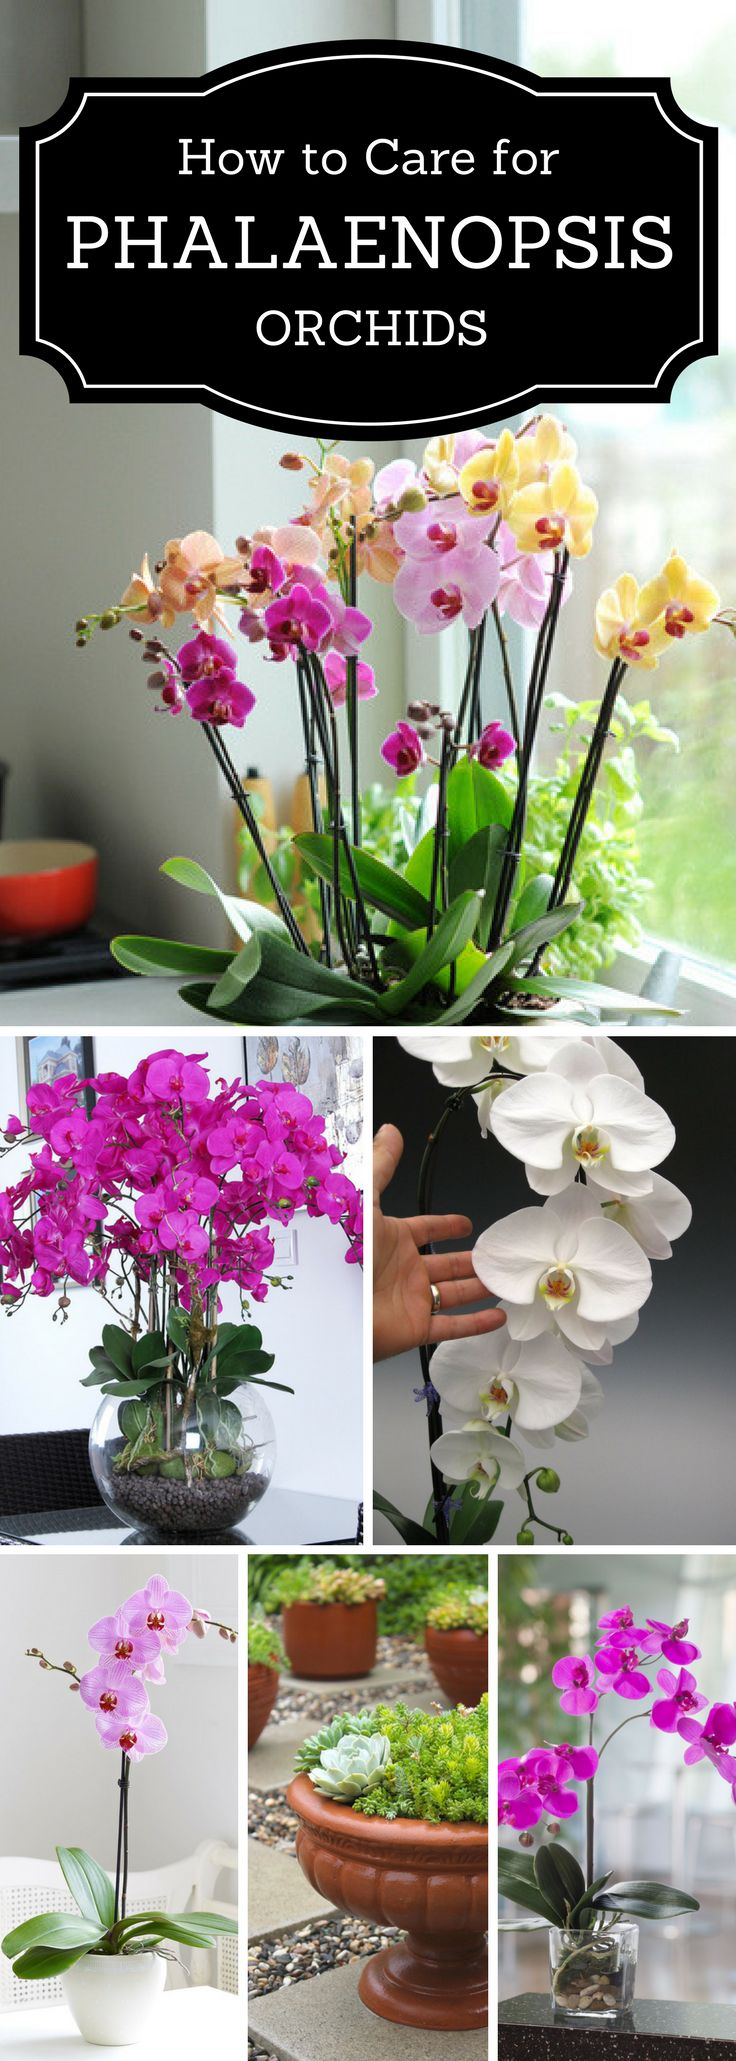 How to care for your orchids #phalaenopsis